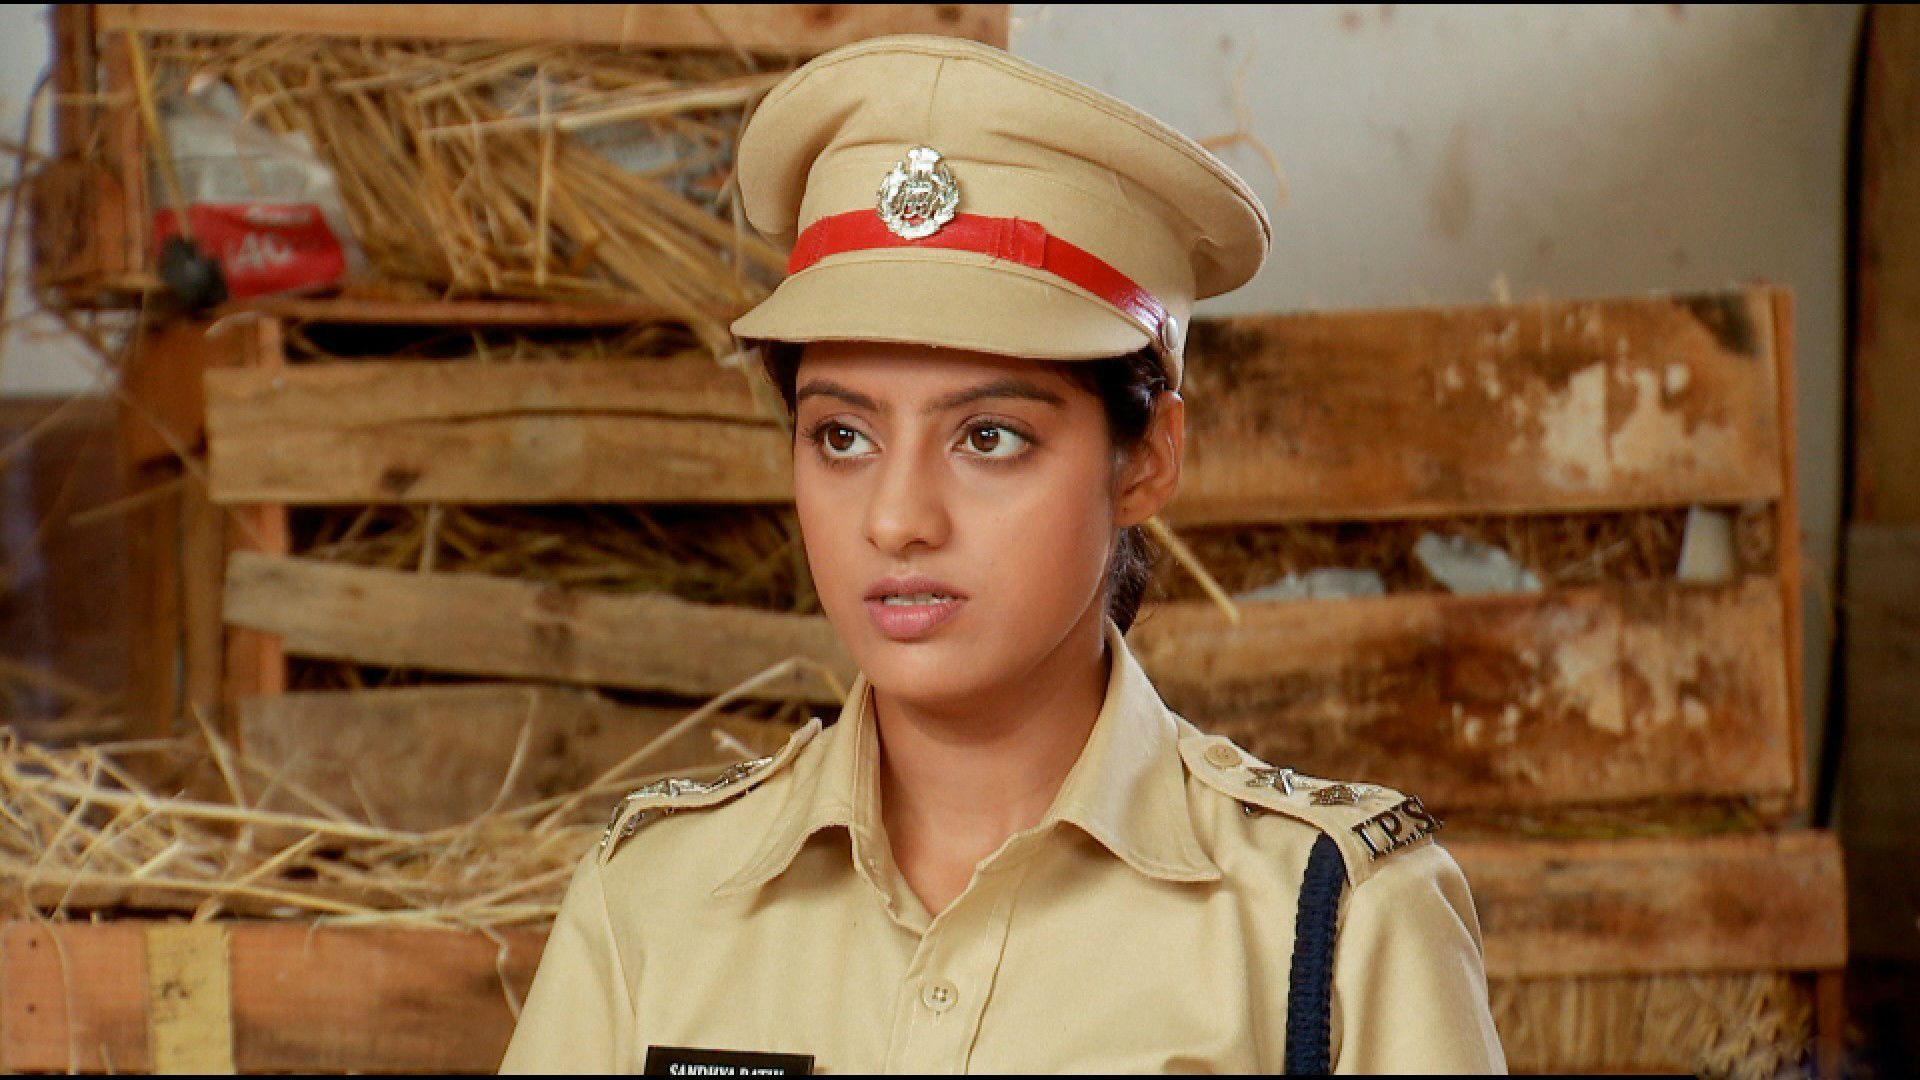 Sandhya faces inquiry committee! Diya Aur Baati Hum 12th April 2016 Episode Written Updates